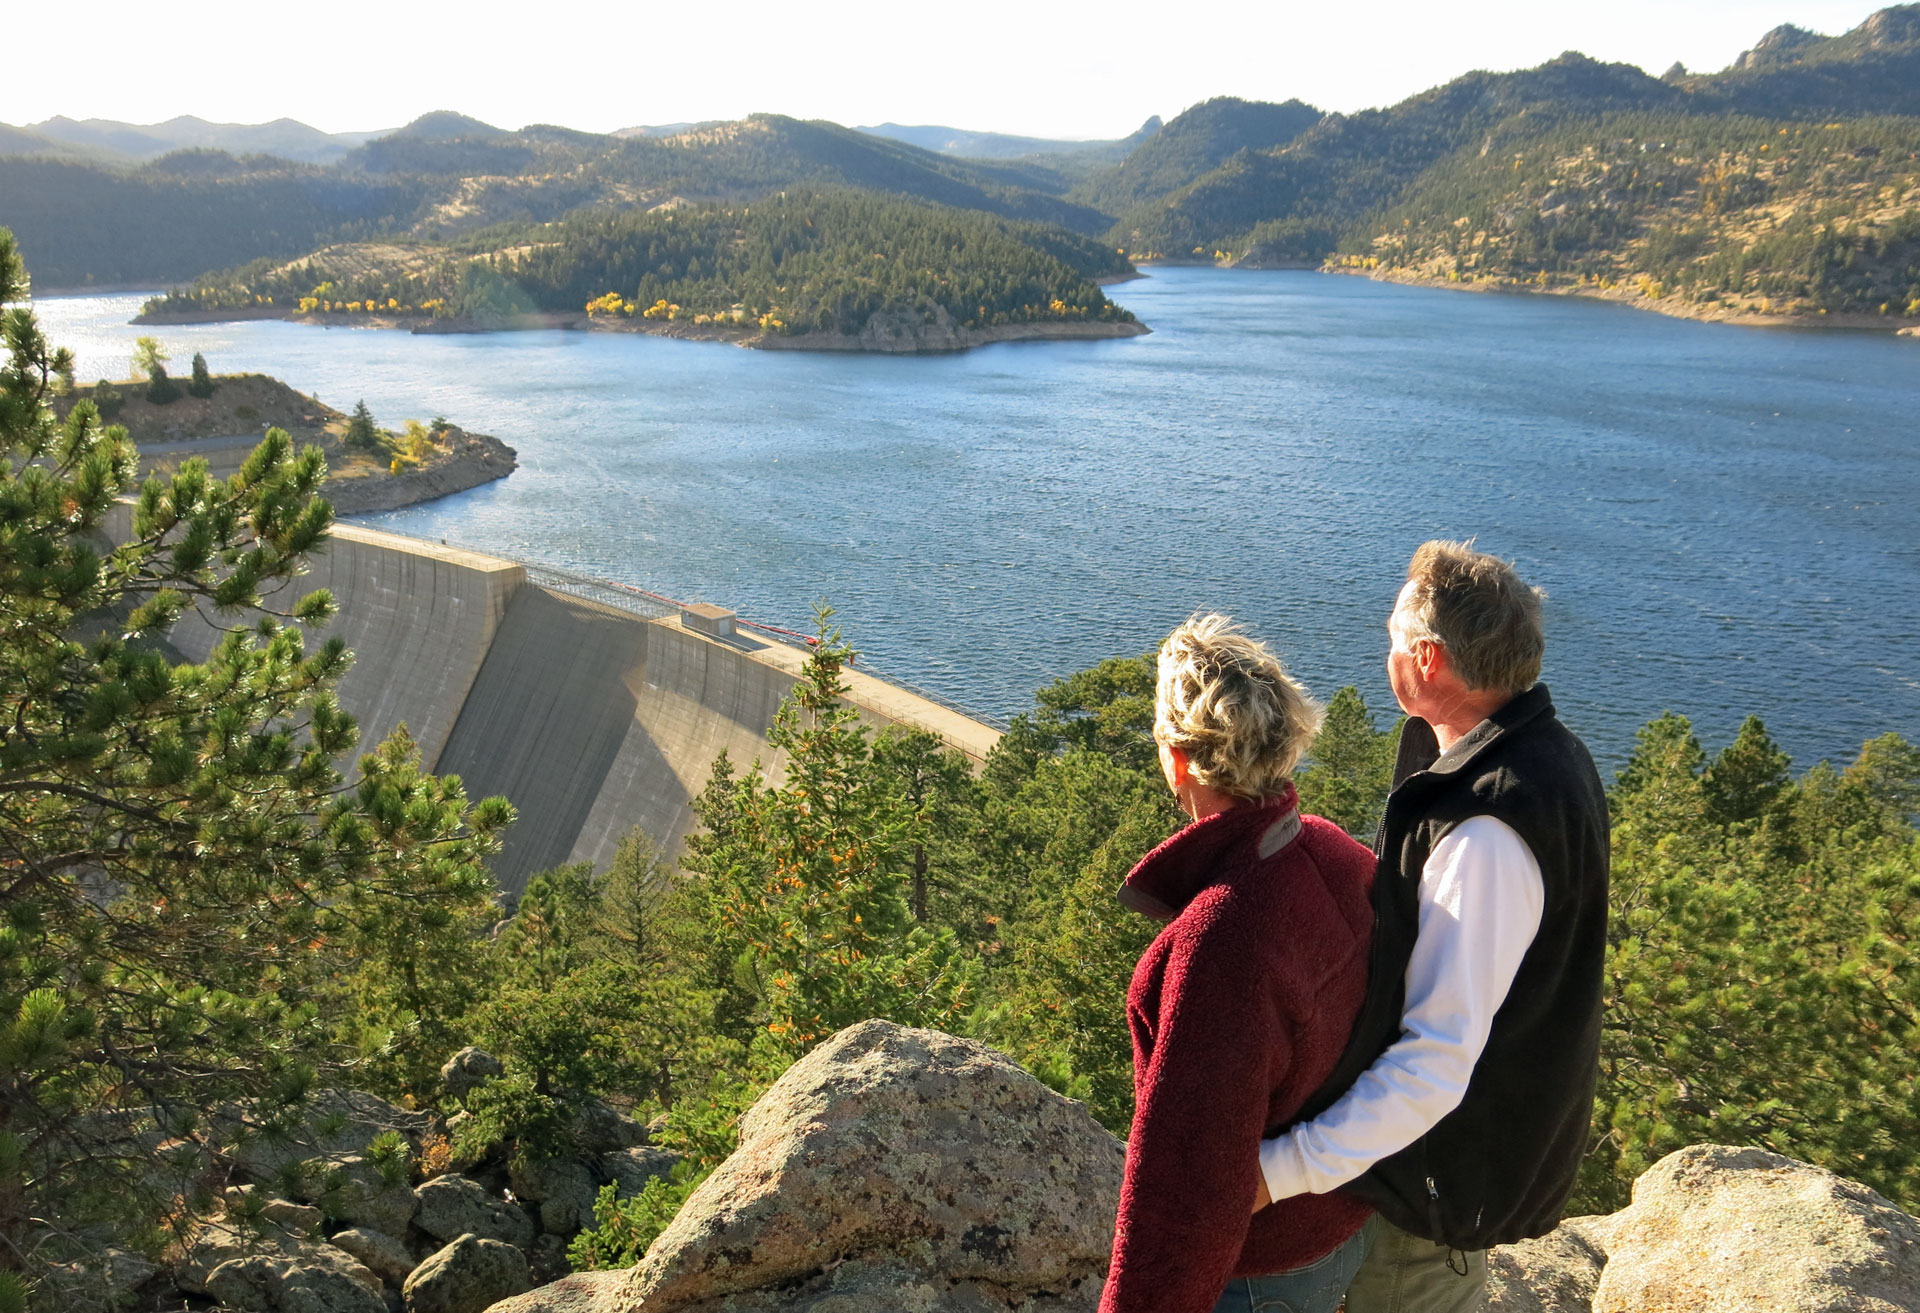 Beverly Kurtz and Tim Guenthner live near Gross Reservoir outside Boulder and oppose a reservoir expansion project. Denver Water is seeking to raise the dam behind them 131 feet.